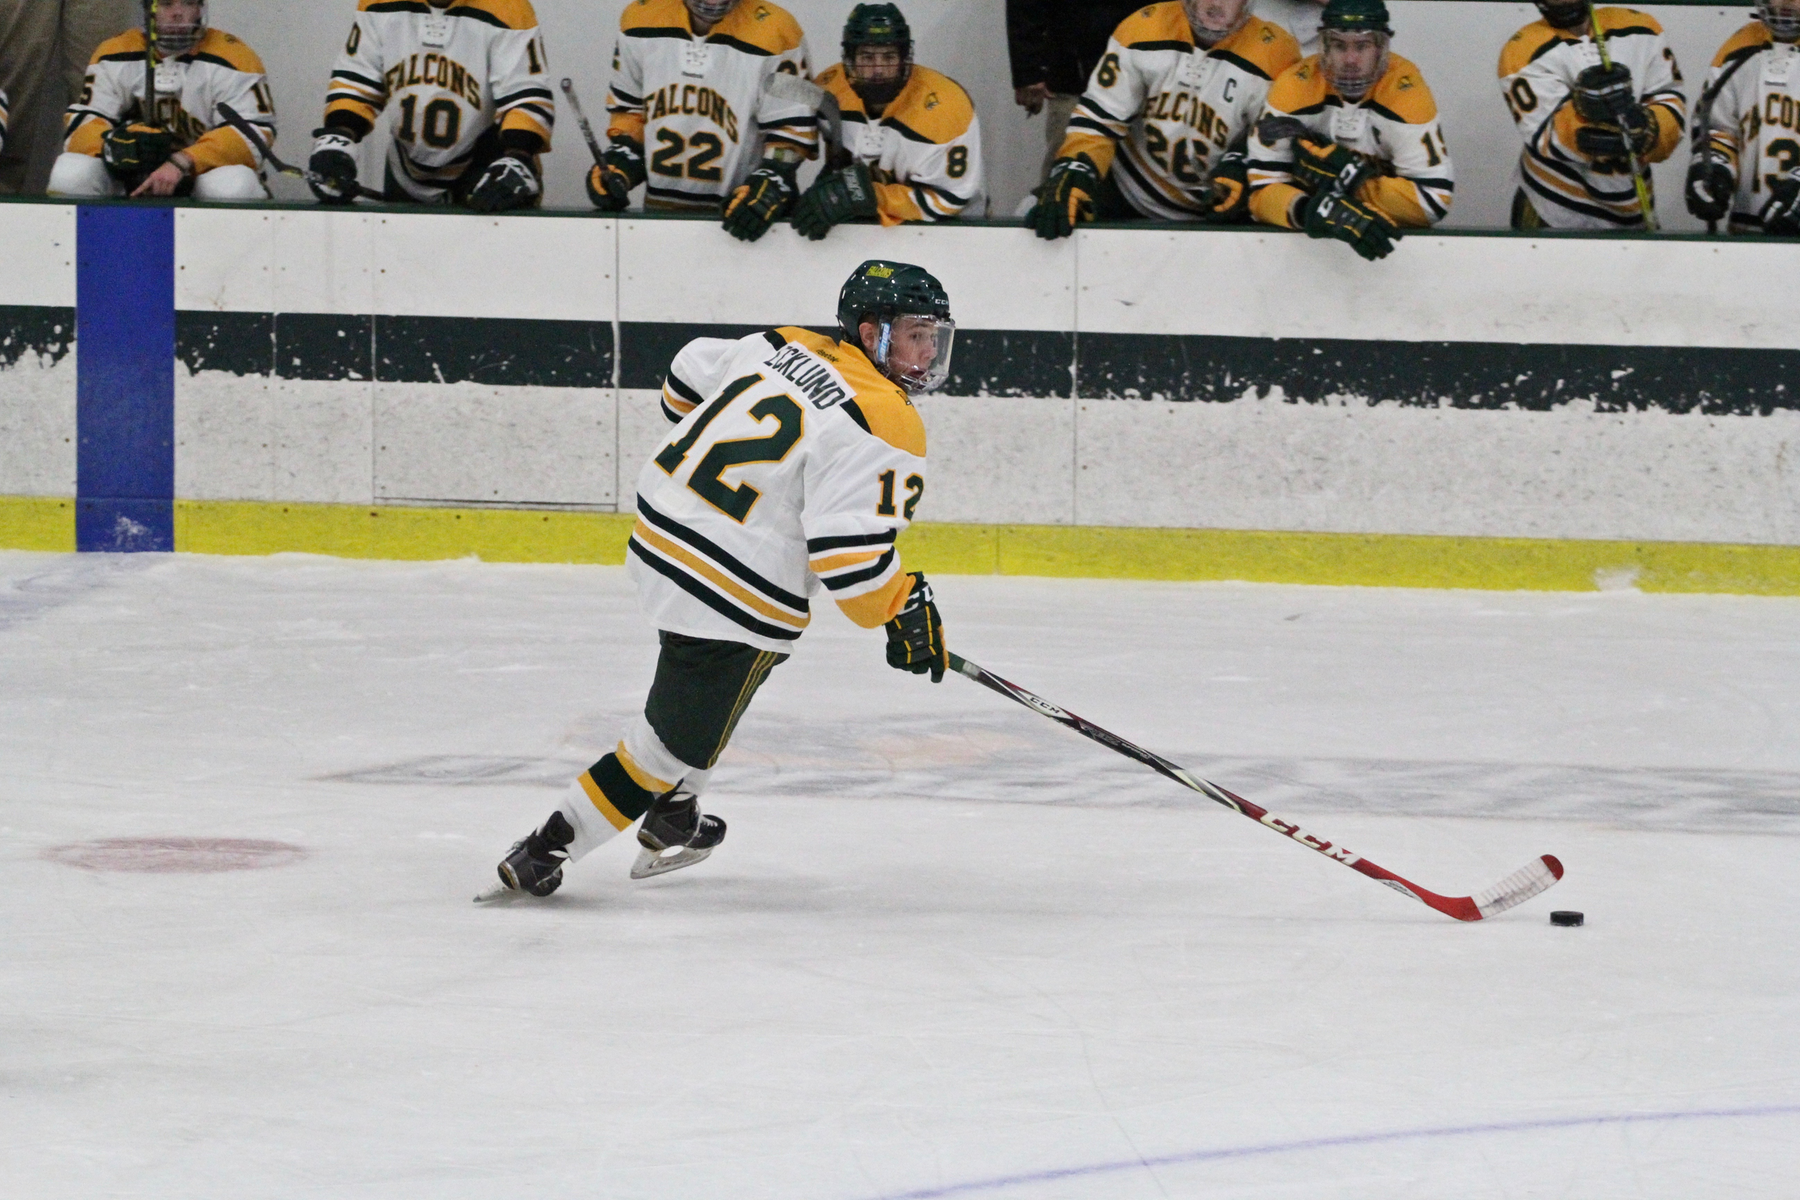 Fitchburg State Falls to Worcester State, 4-2